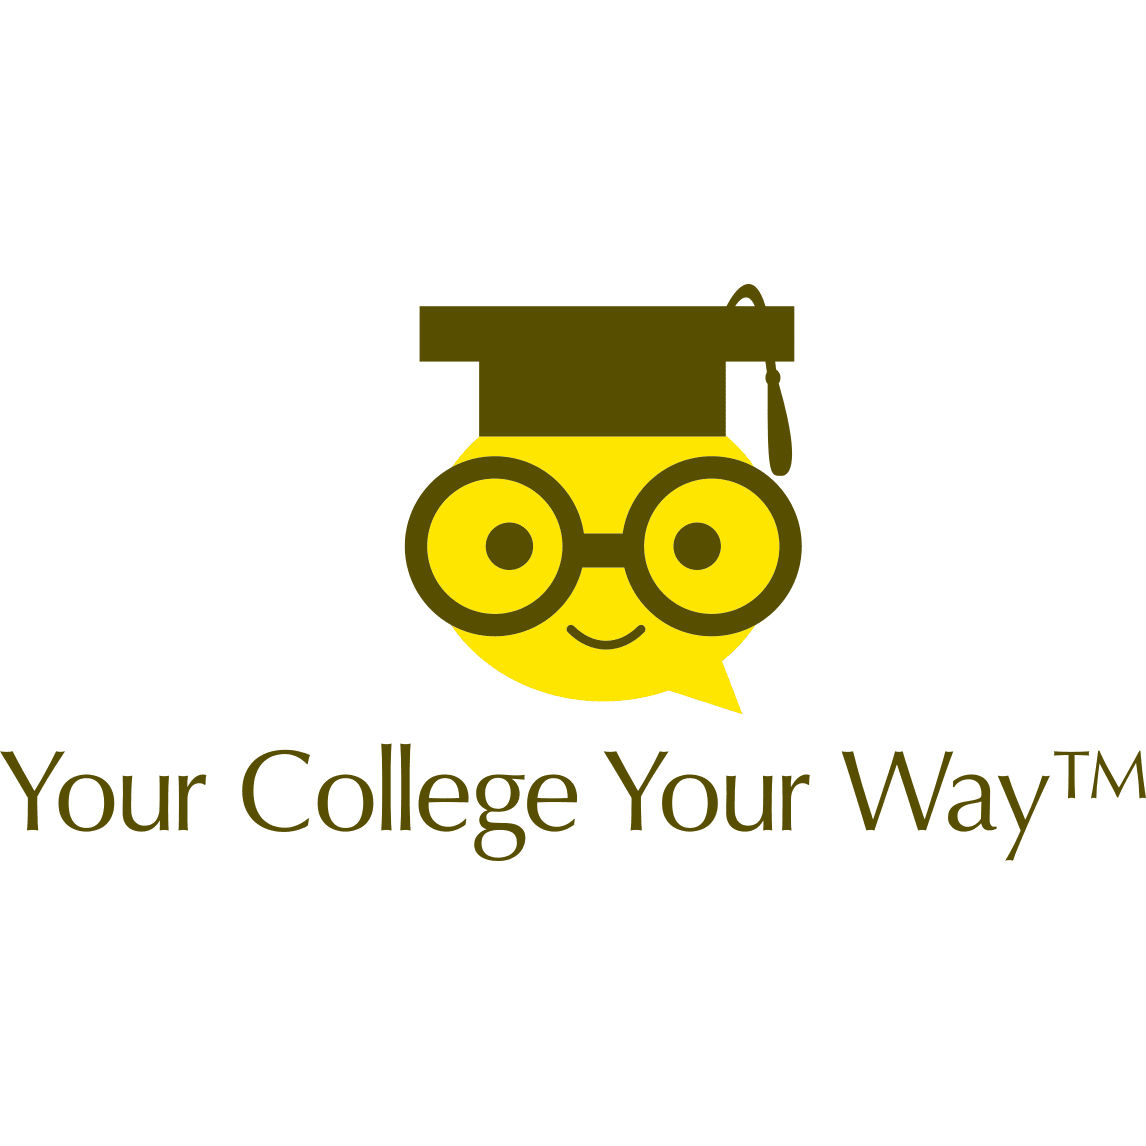 Your College Your Way